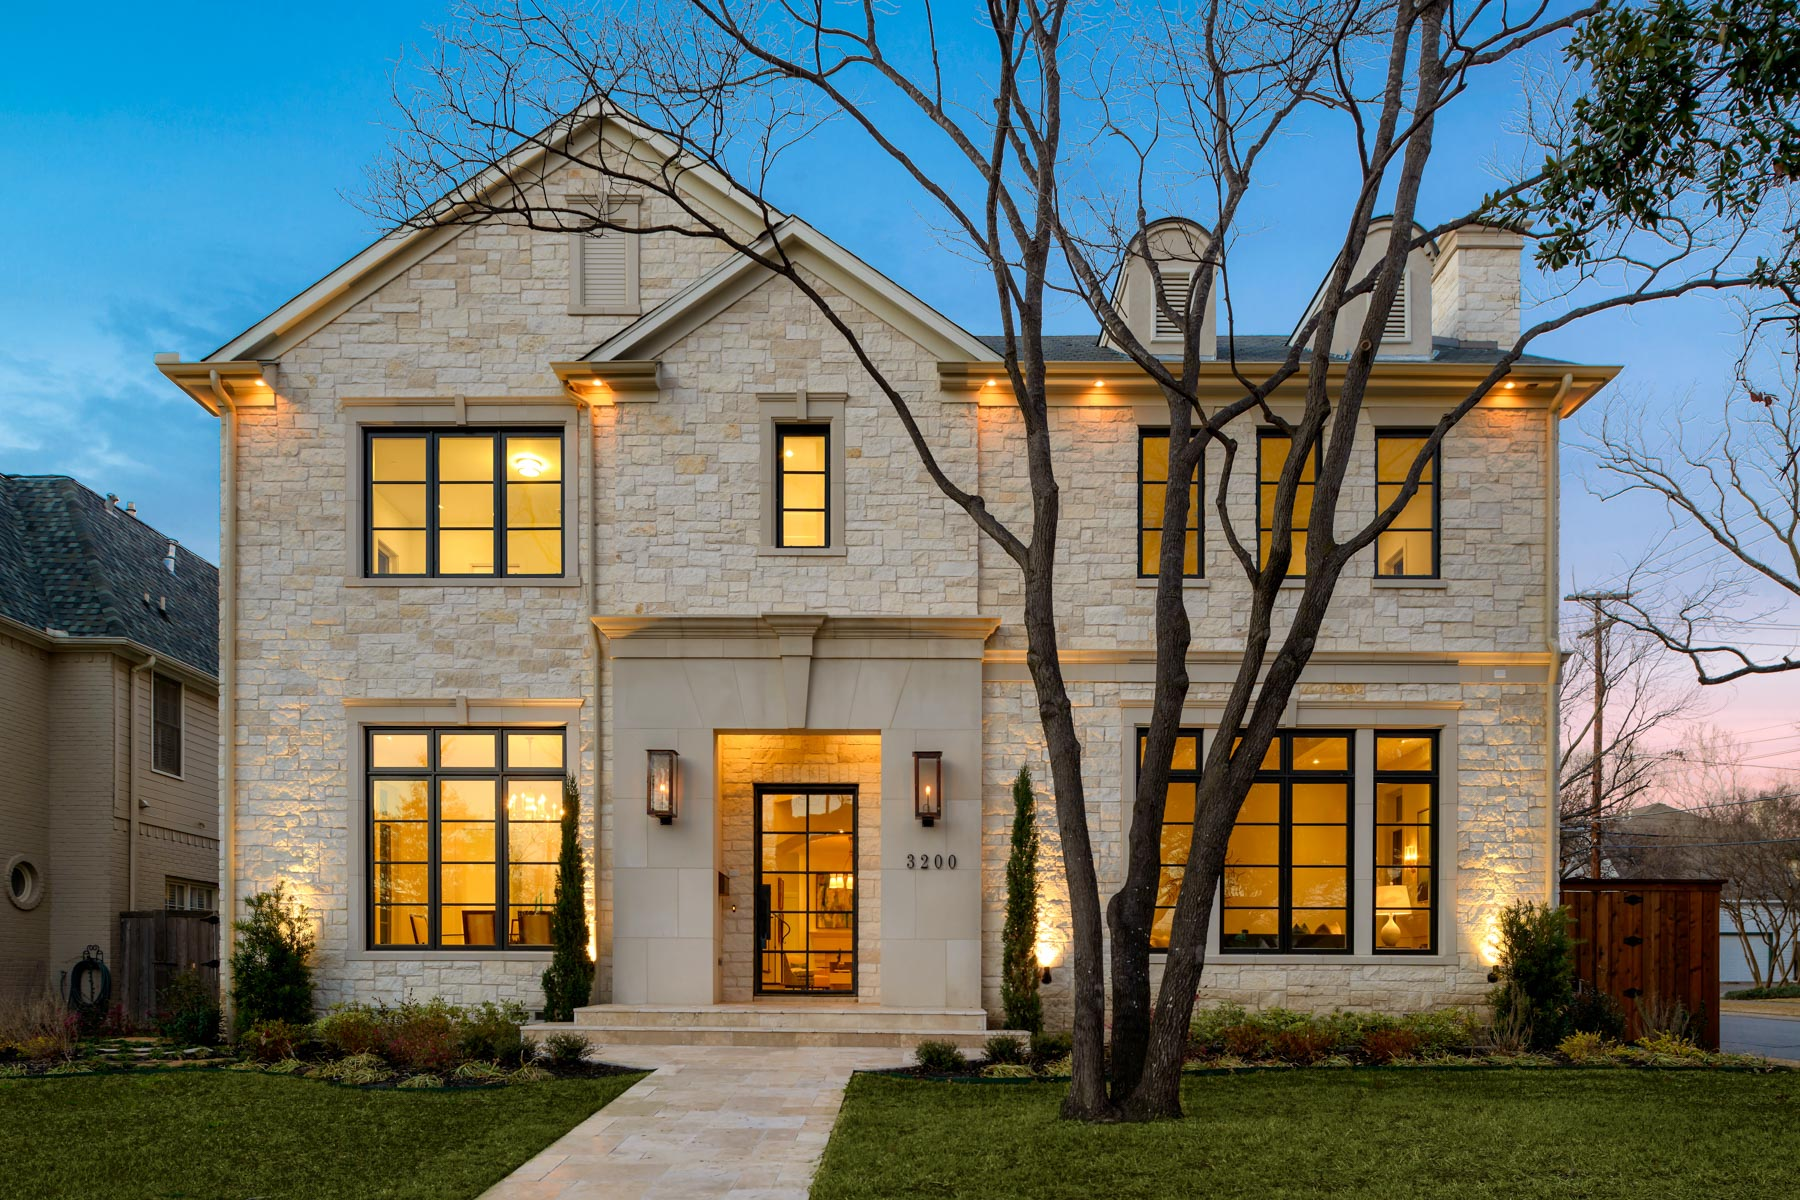 Casa Unifamiliar por un Venta en Stunning University Park New Construction 3200 Purdue Dallas, Texas, 75225 Estados Unidos